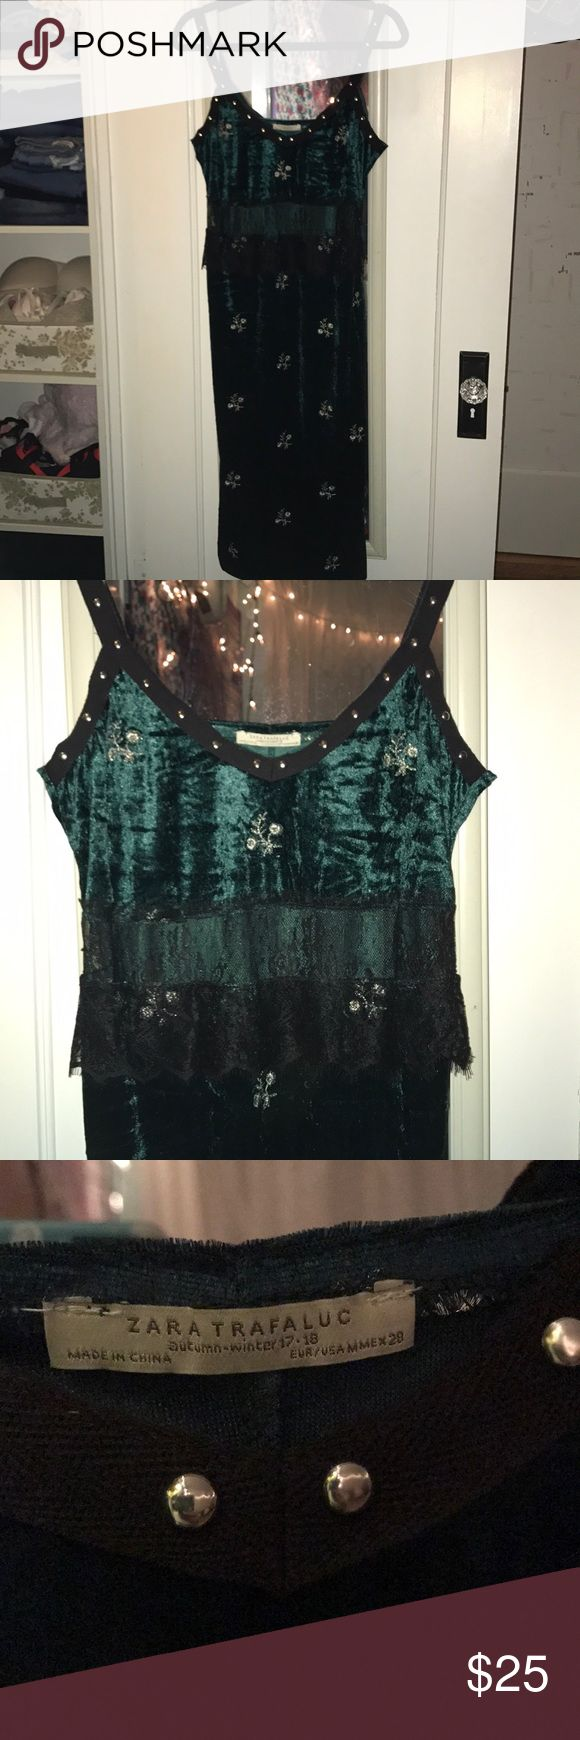 ZARA Collection Dress Autumn/Winter exclusive collection mid-dress from ZARA  Never worn because it was too big on me Velour emerald green color with silver floral designs and silver studs on straps  Has a piece of black see thru lace under chest area(picture 4) Size medium Zara Dresses Midi